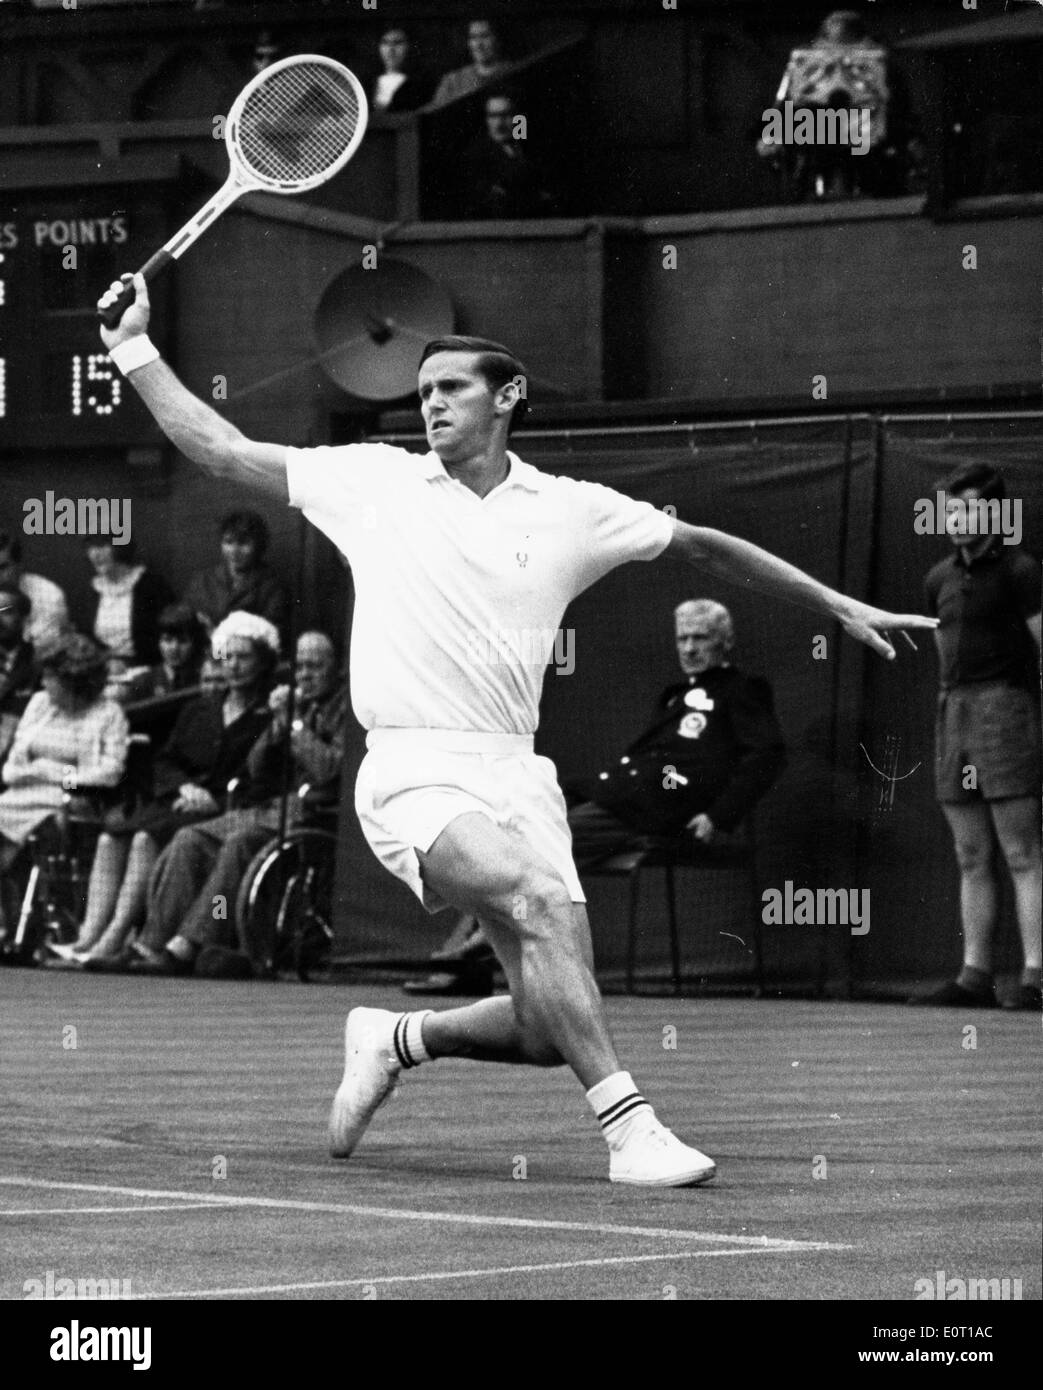 Tennis player Roy Emerson during a match Stock Royalty Free